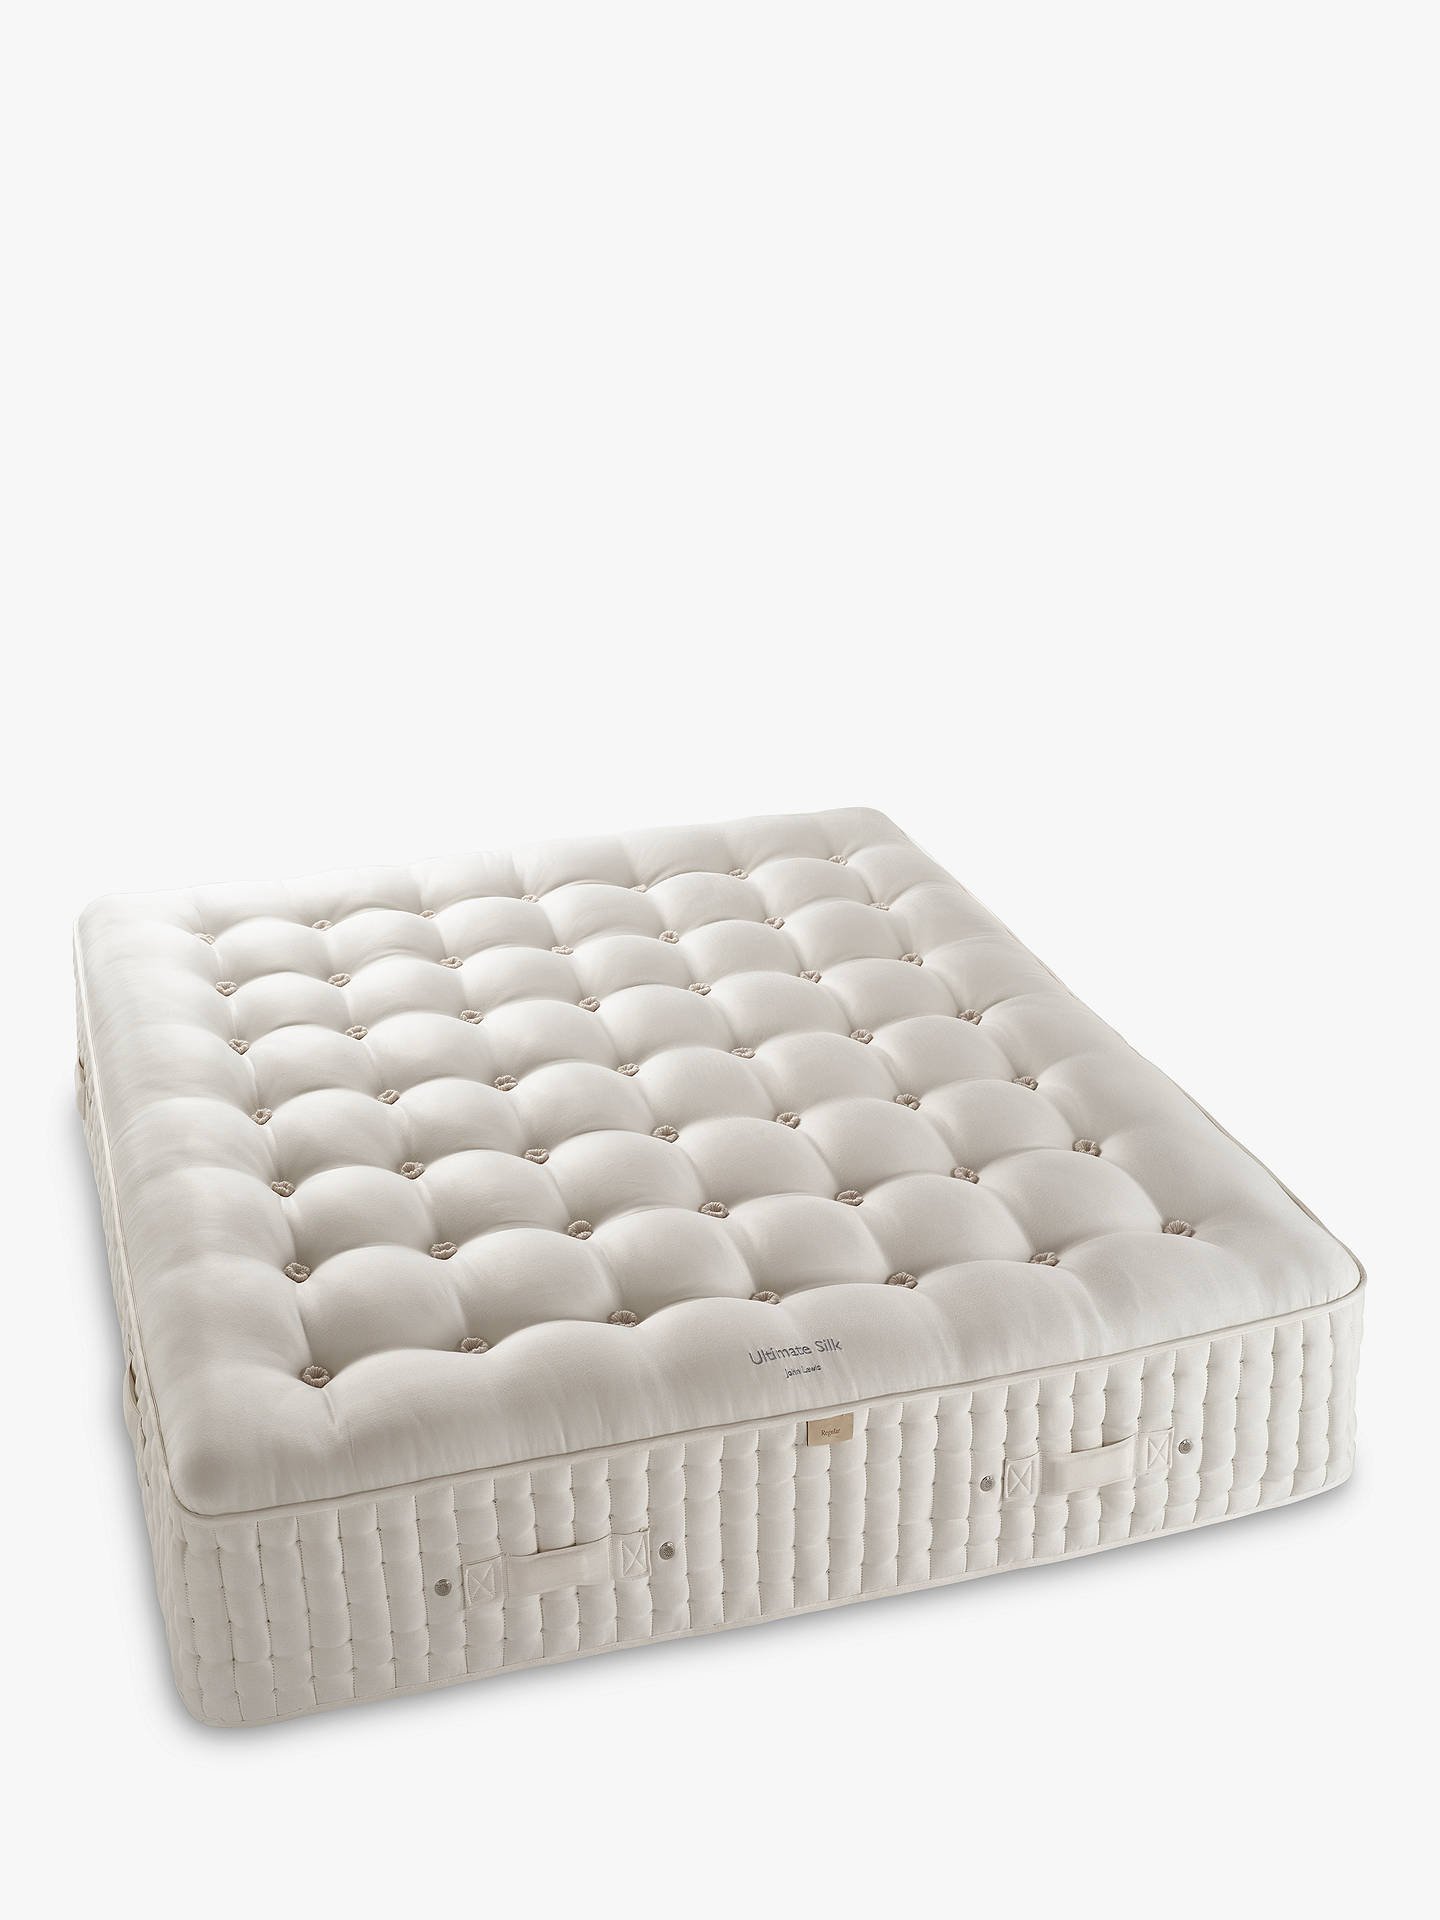 BuyJohn Lewis & Partners The Ultimate Collection Silk Pocket Spring Mattress, Medium, Super King Size Online at johnlewis.com